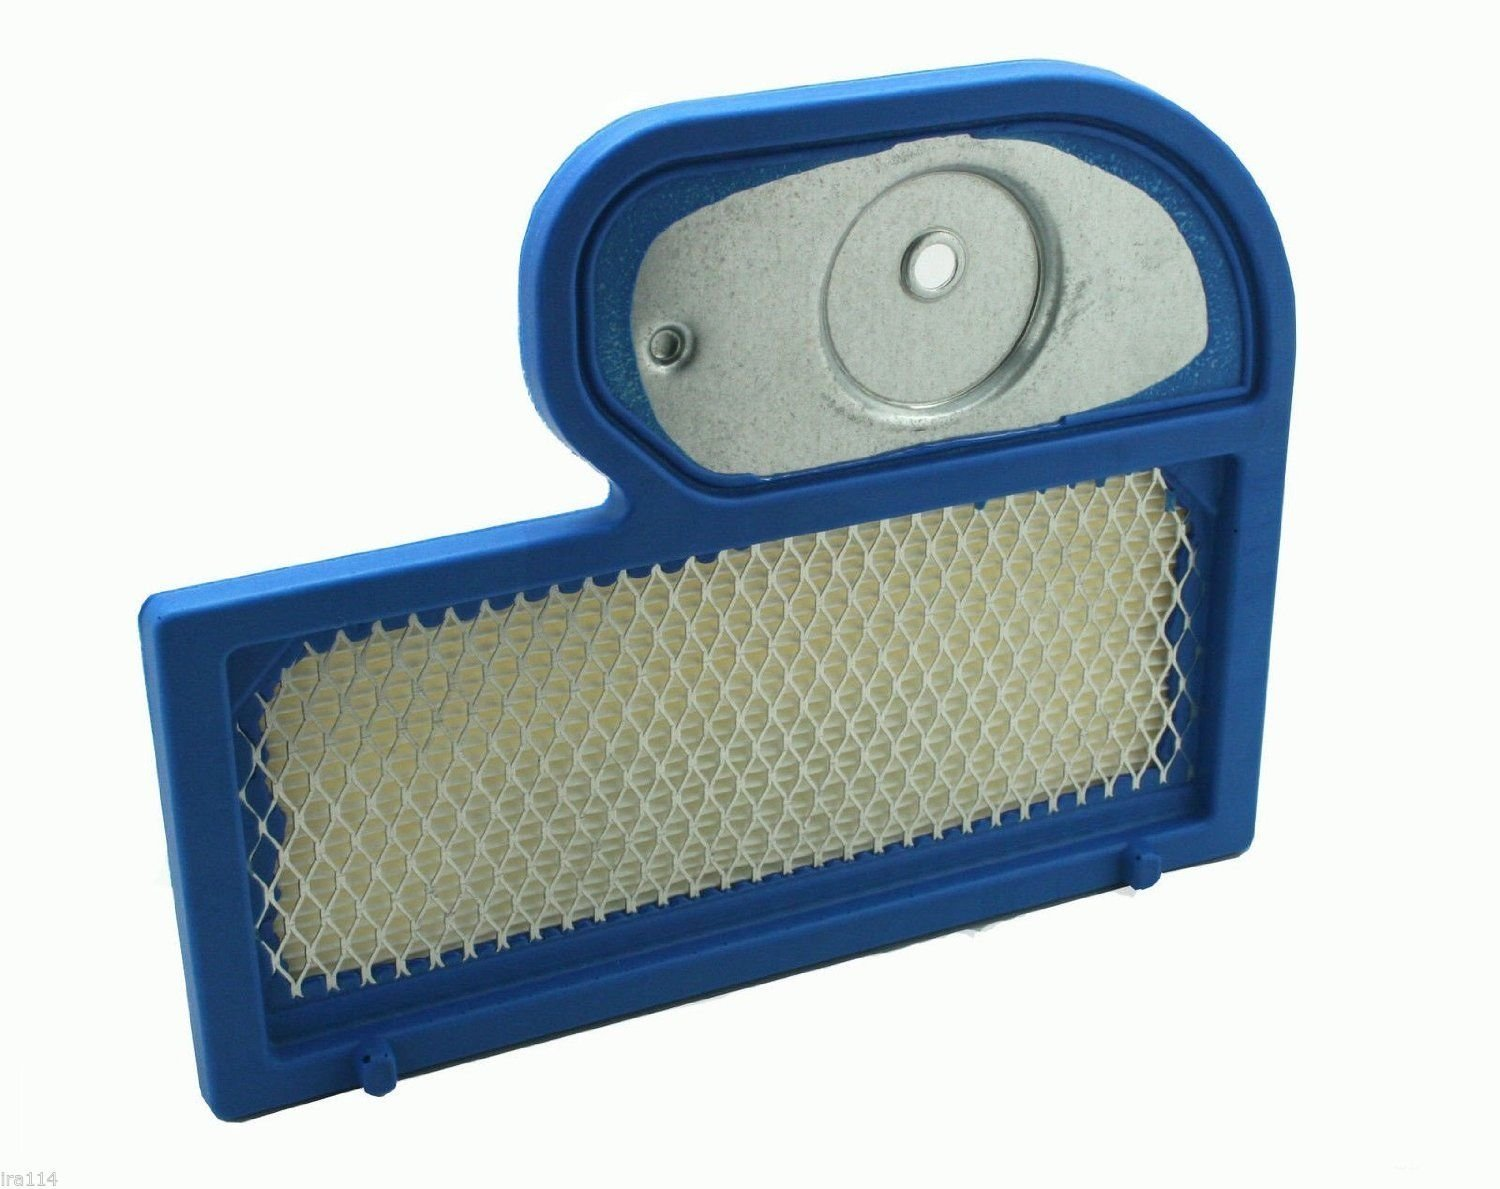 Stens #100-160 AIR FILTER FOR KAWASAKI # 11013-7002 stens air filter ;from#ira114__JENT13291847273758